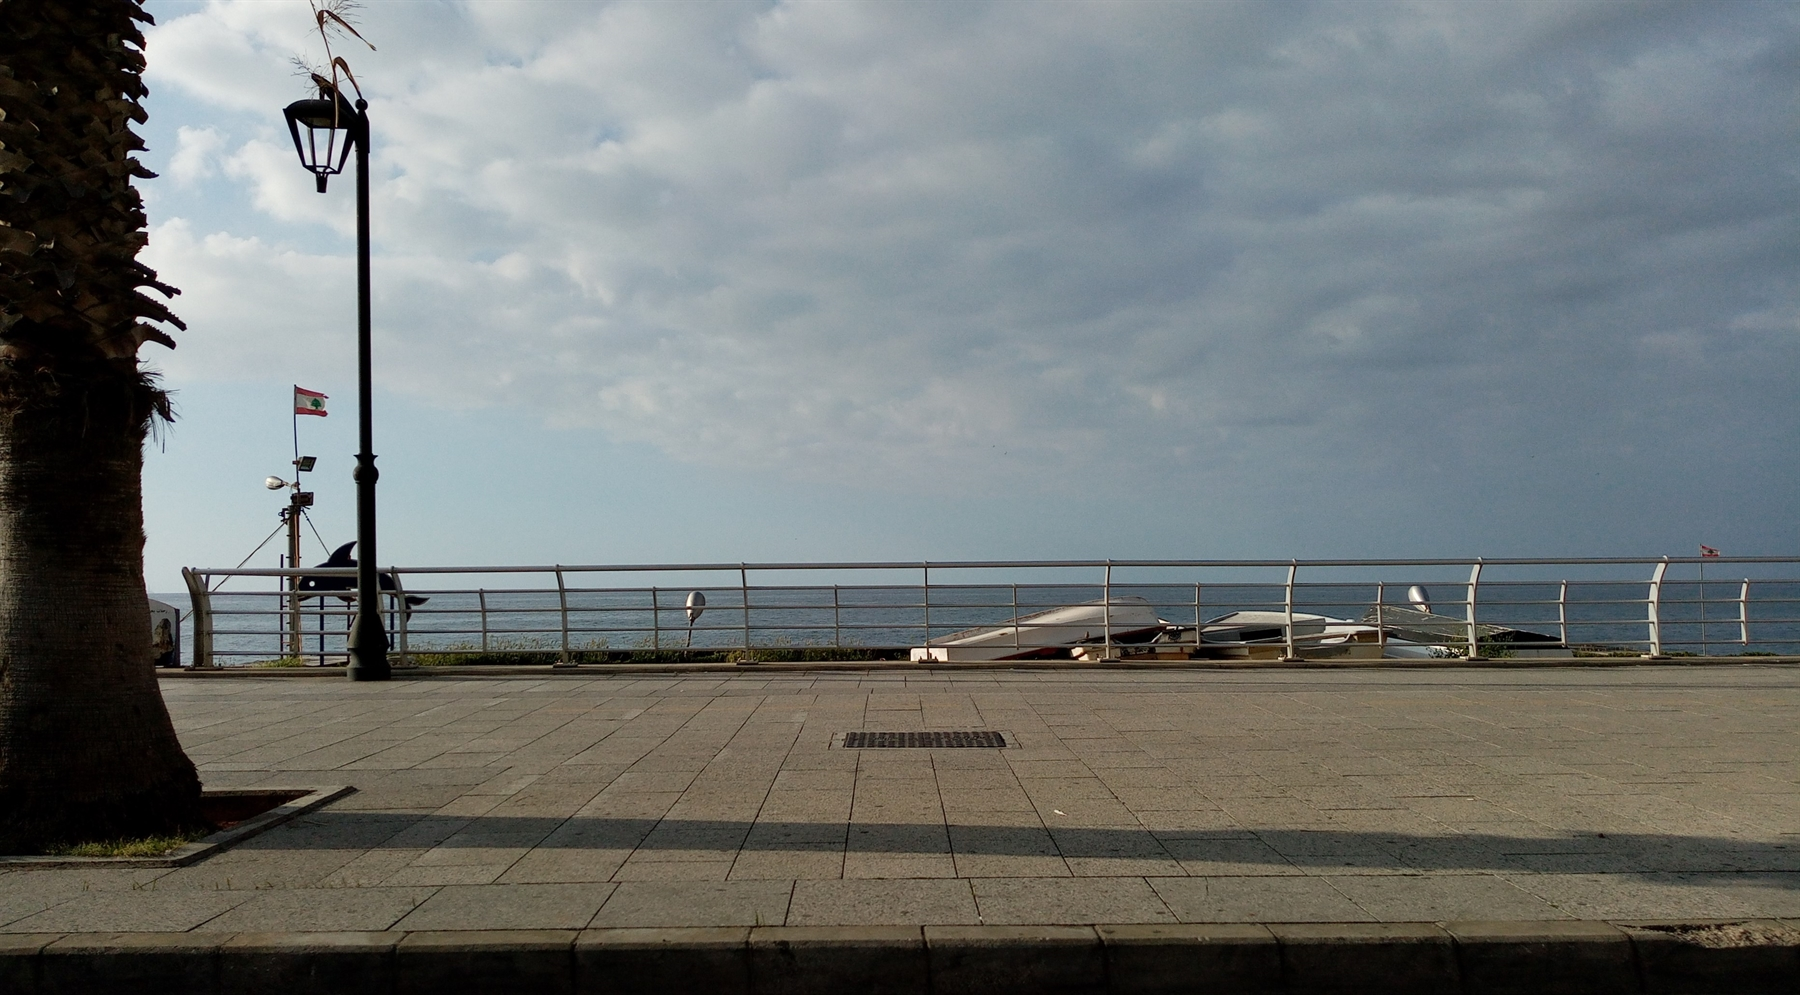 The Corniche, one of the busiest public spaces in Beirut, is completely empty during the lockdown (Photo: Dounia Salamé, April 2020)